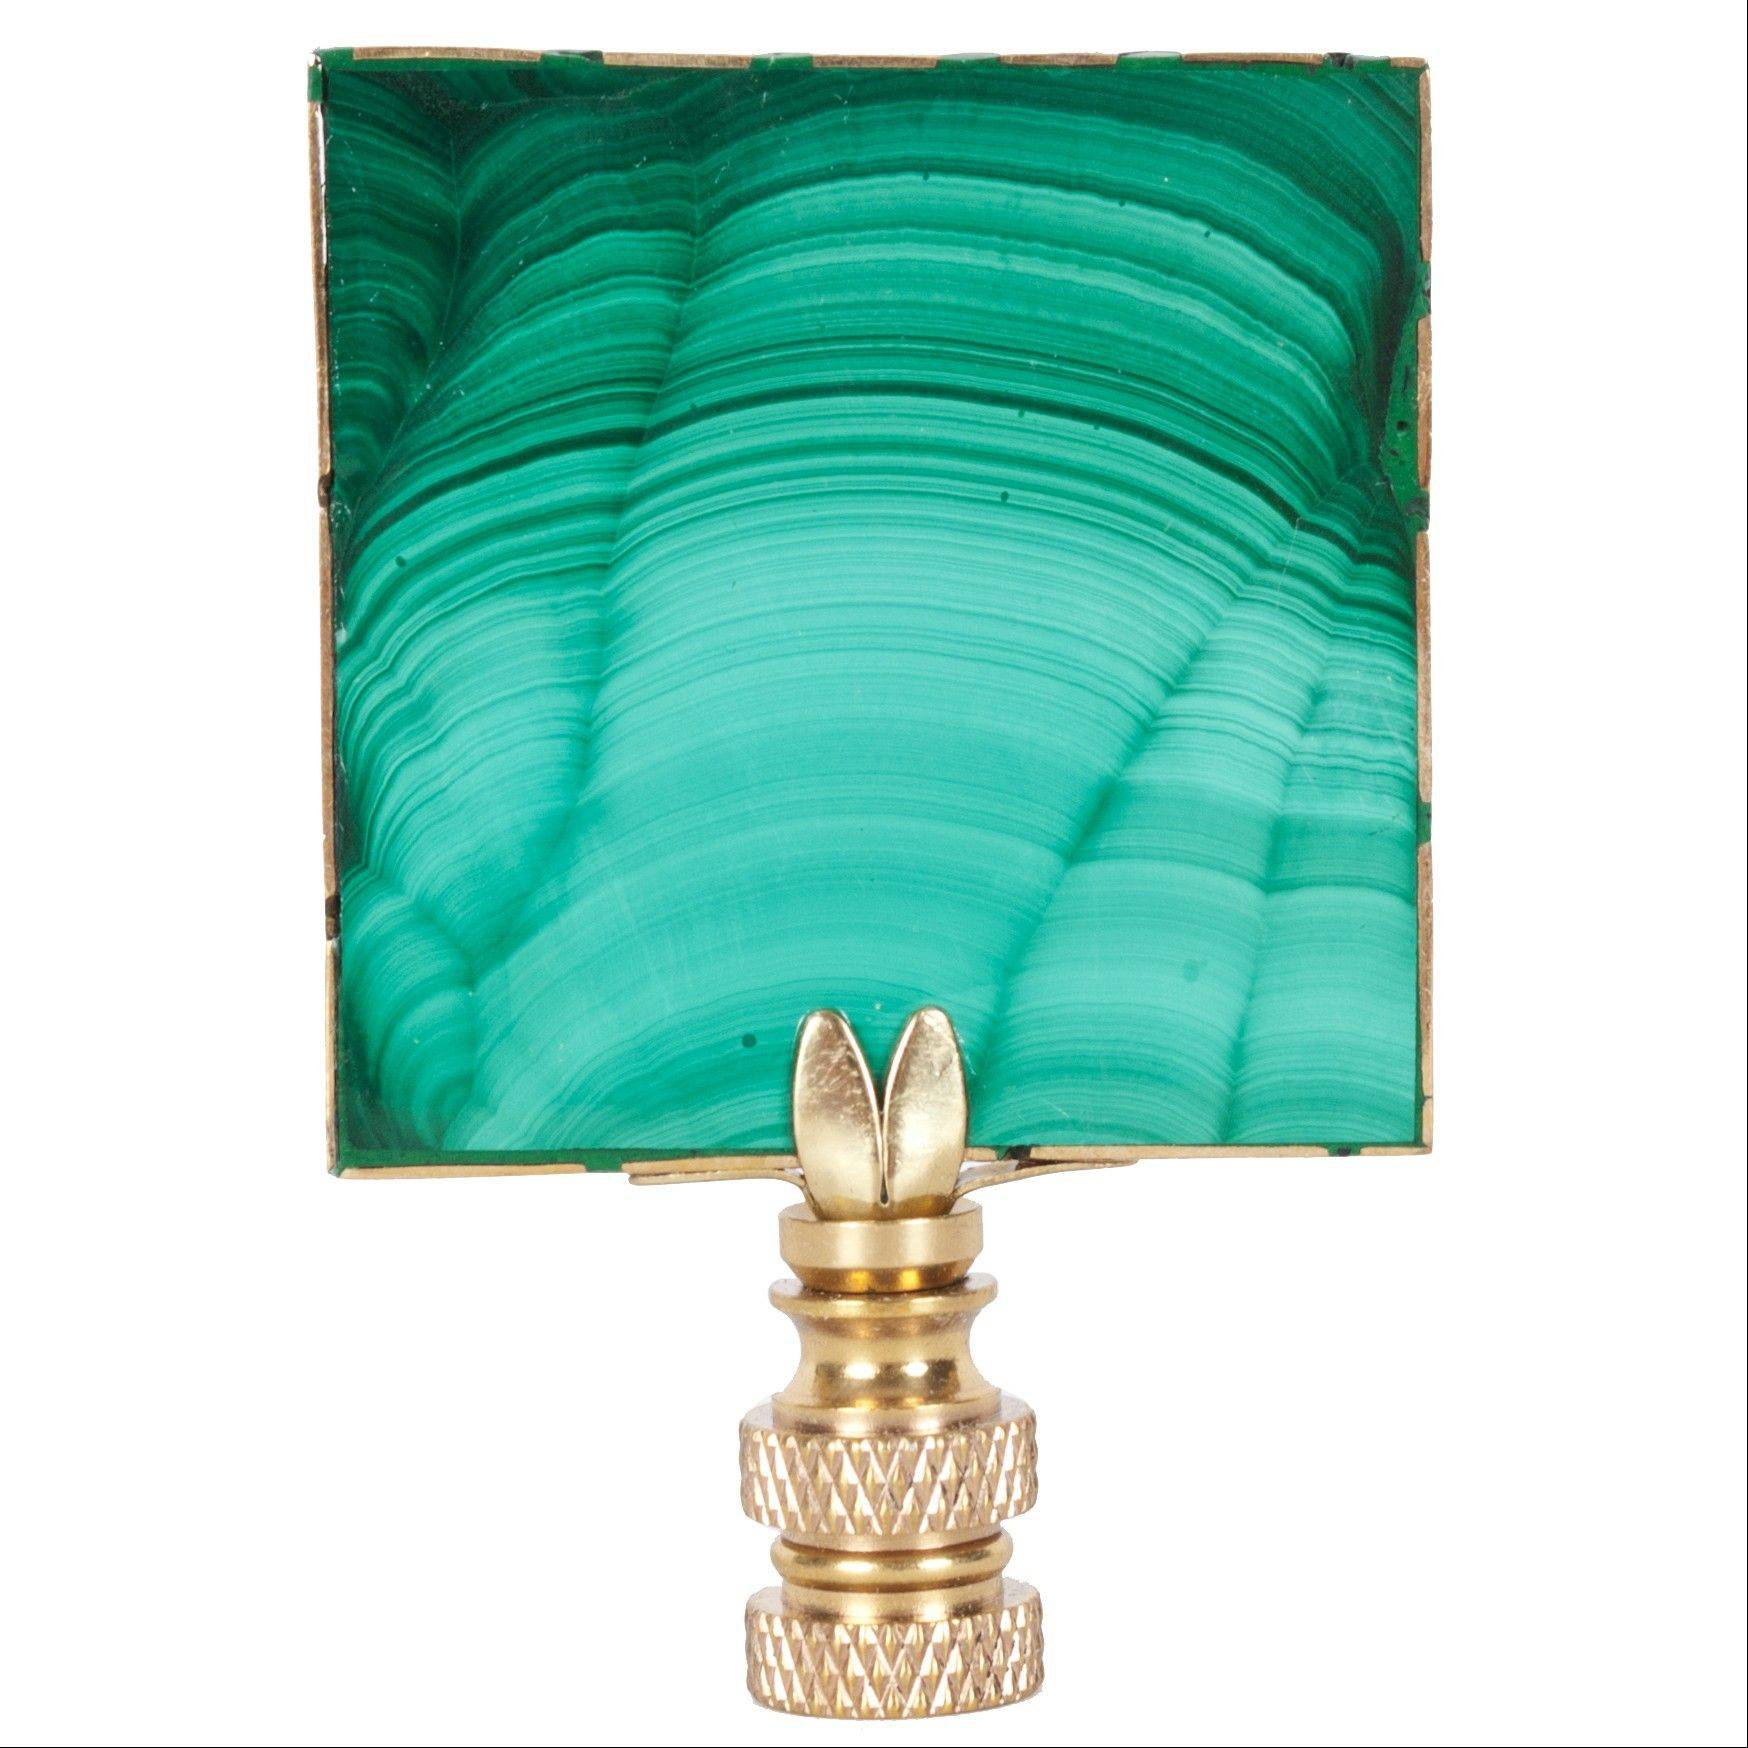 Hillary Thomas' Billy finial is crafted from a sliver of vibrant green and black malachite, adding a distinctive touch to a lamp. It brings one of fall's hot trends toward nature and natural elements into play.